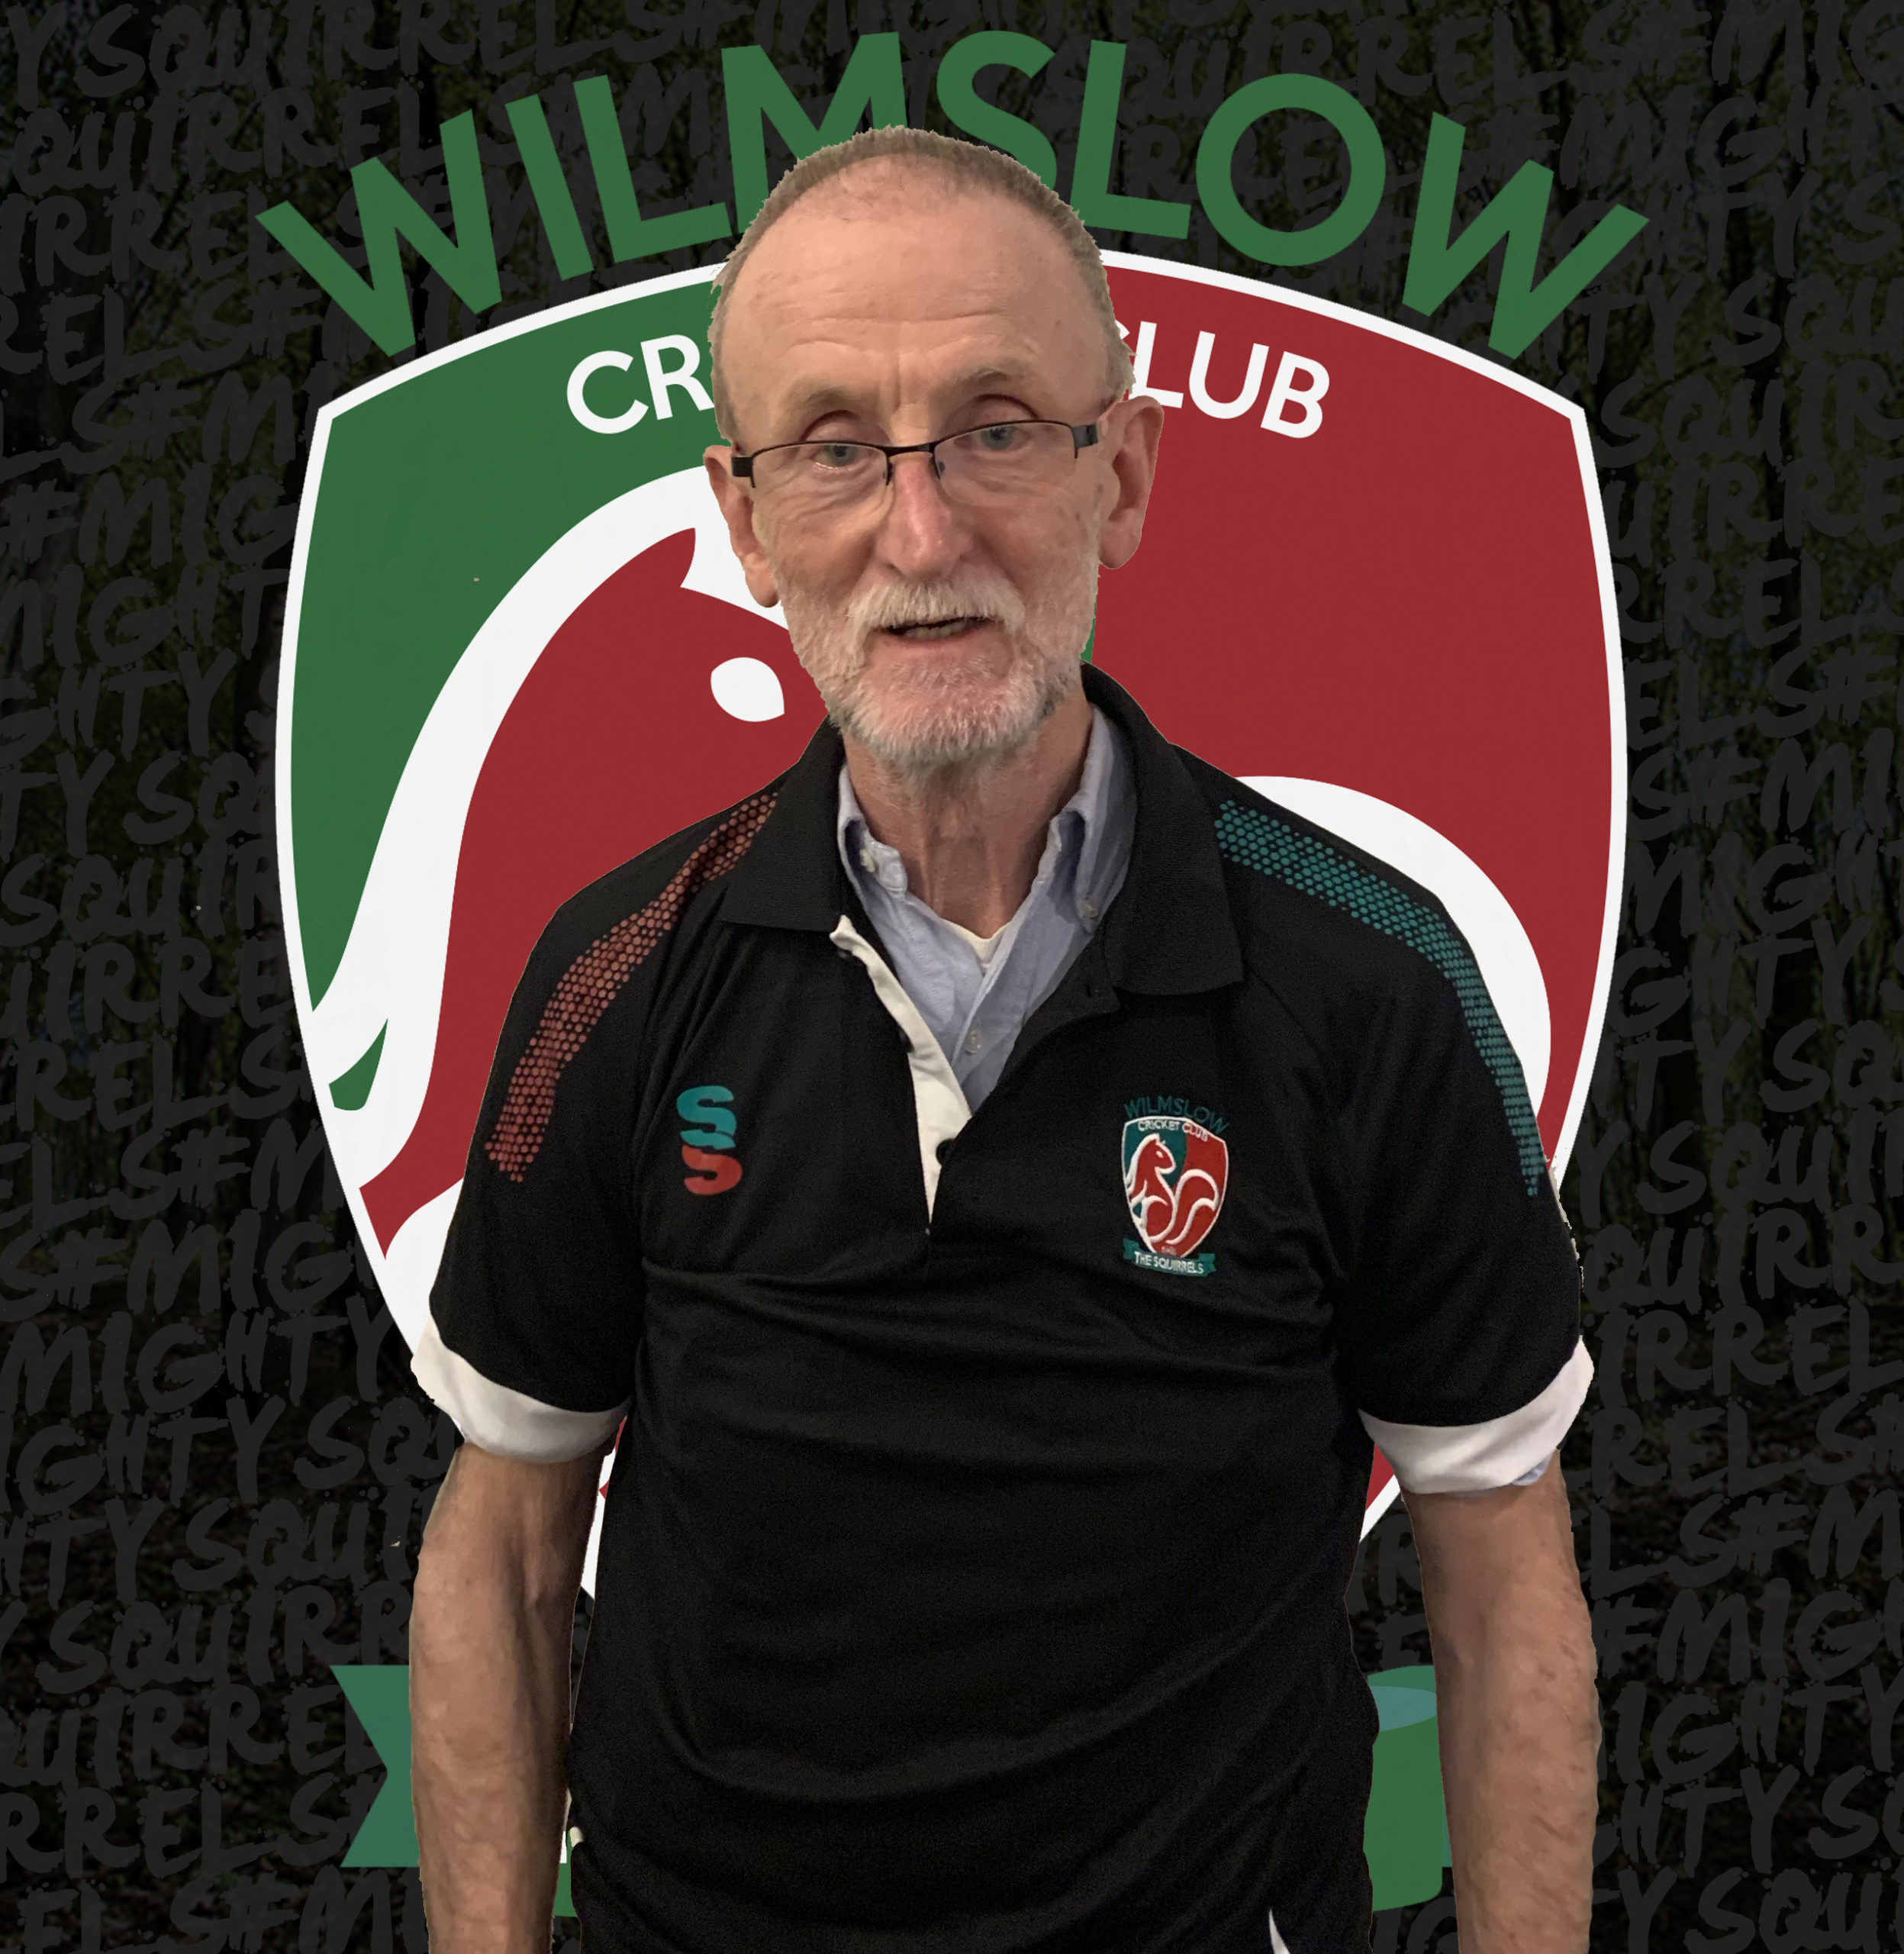 https://wilmslowcricketclub.com/wp-content/uploads/2020/05/Gerald-Profile-Page-scaled.jpg